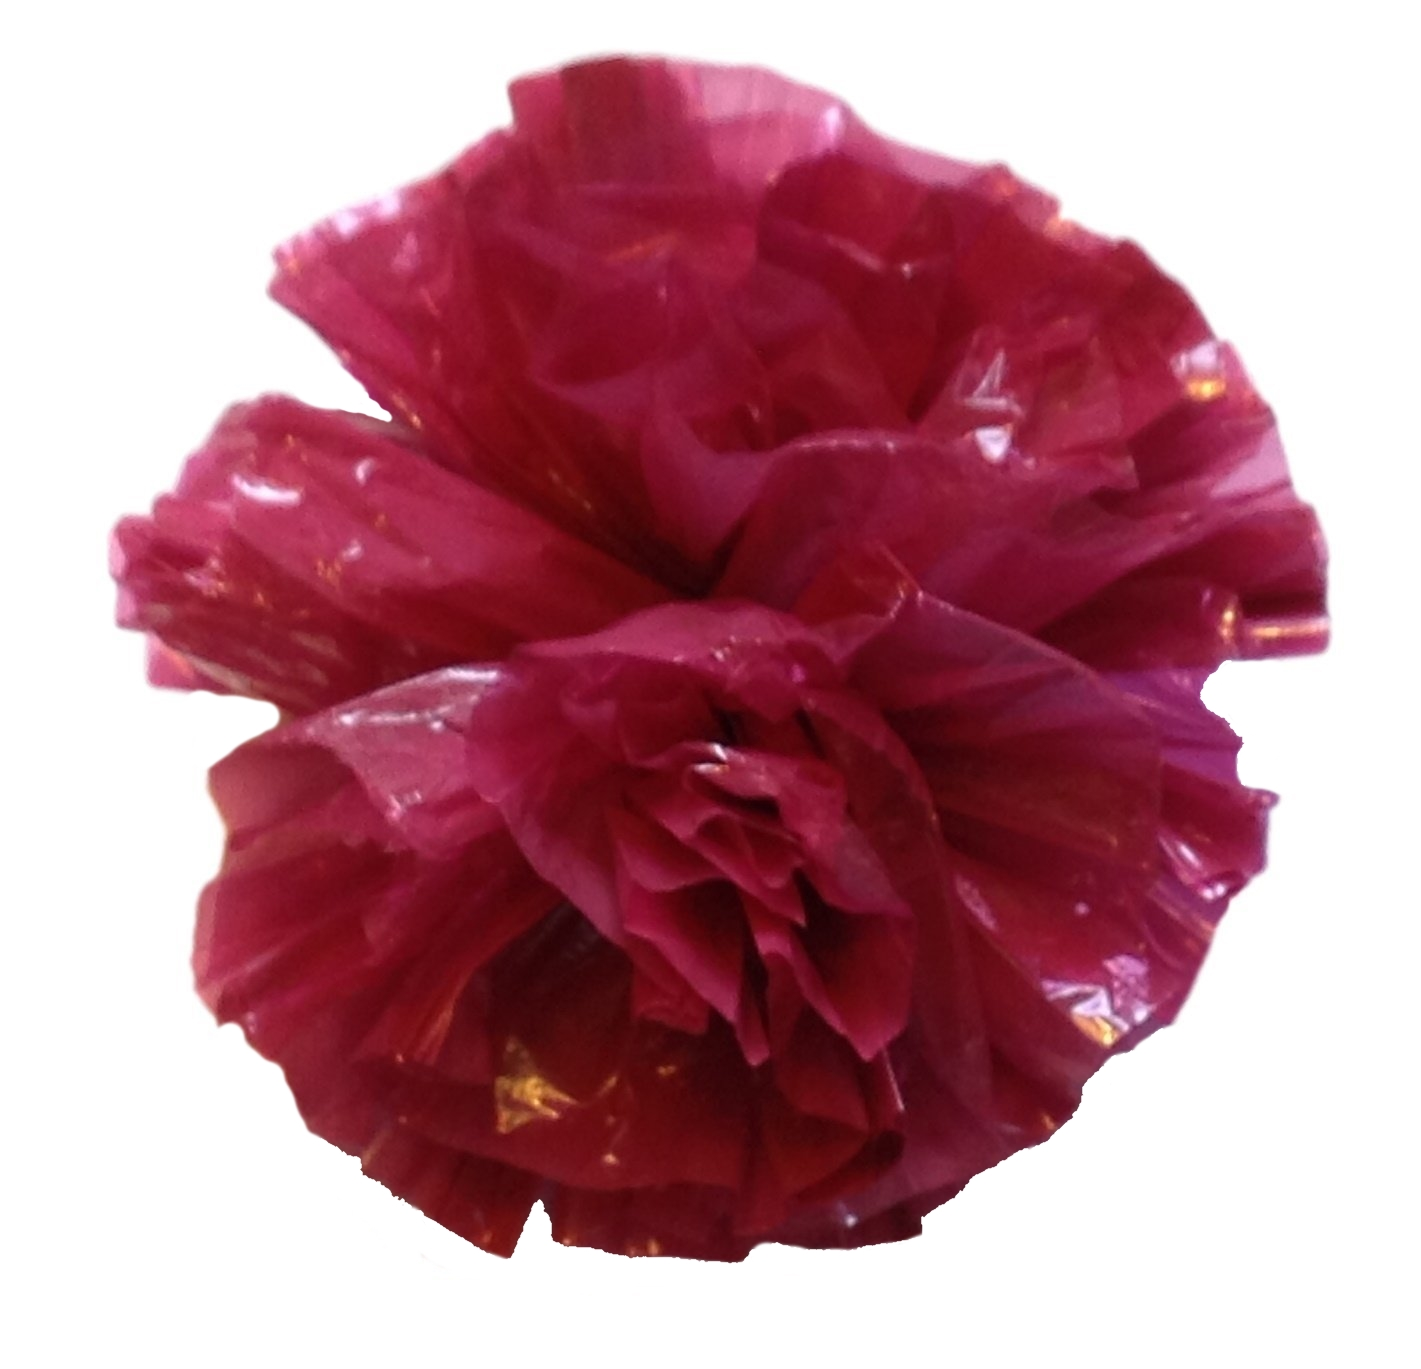 12 Plastic Flower Poms with Suction Cups Car/Limo Decoration Deco-Puffs - burgundy